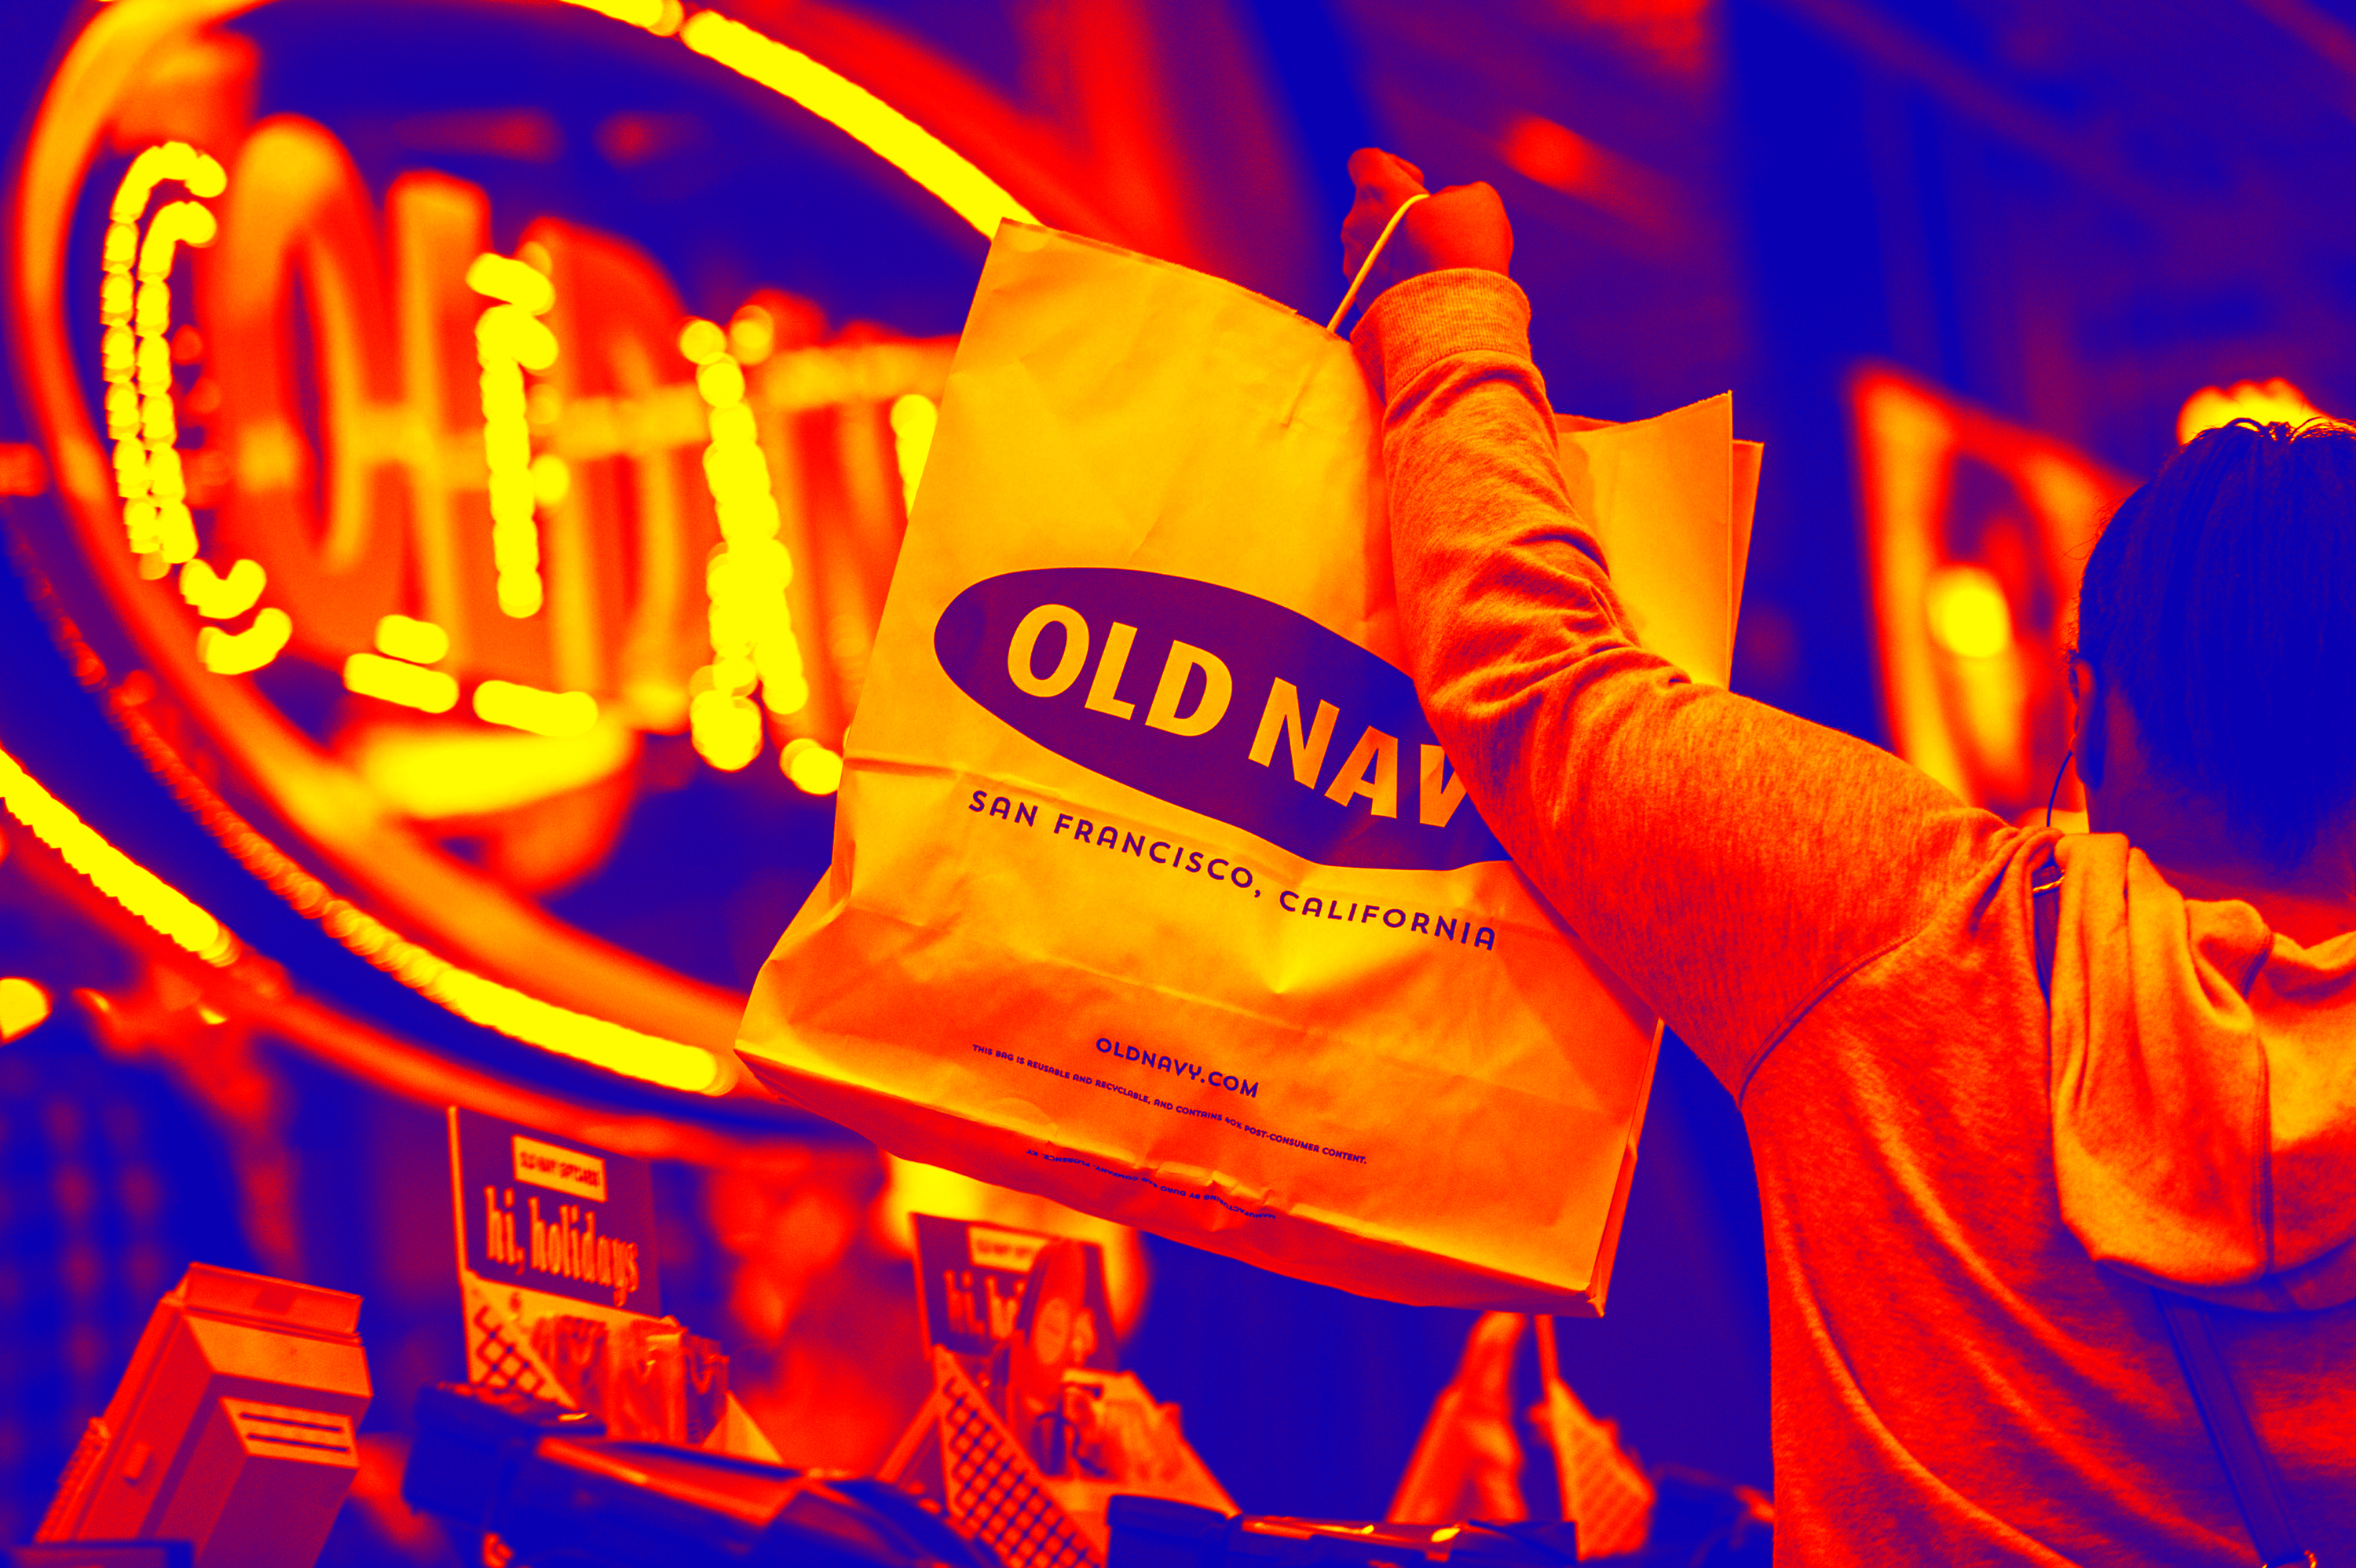 More agency churn at Old Navy and there's a new CEO at the Mouse House: Wednesday Wake-Up Call